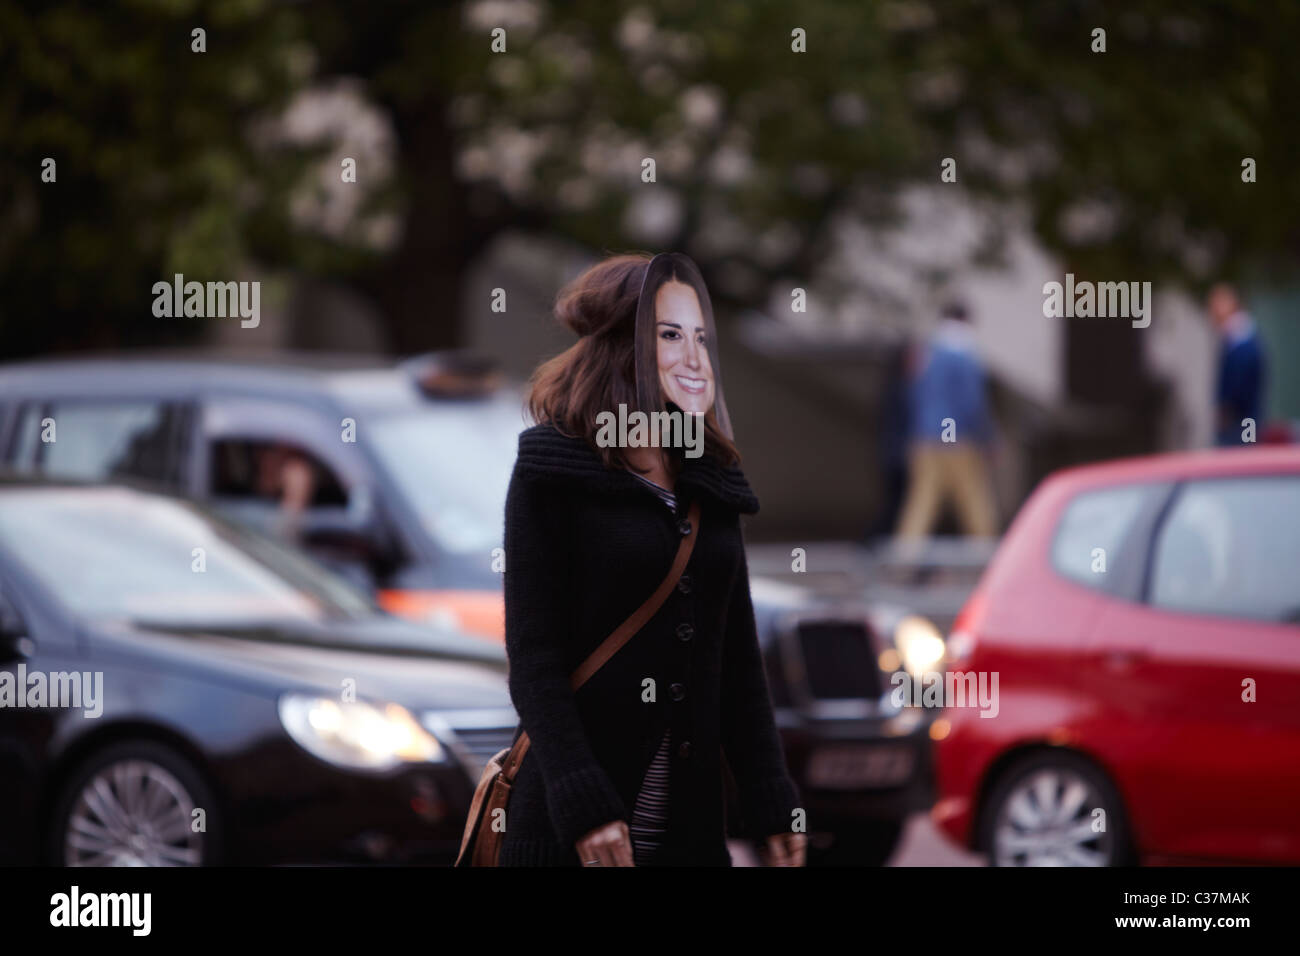 Woman waving wearing a Kate Middleton mask on the mall Stock Photo